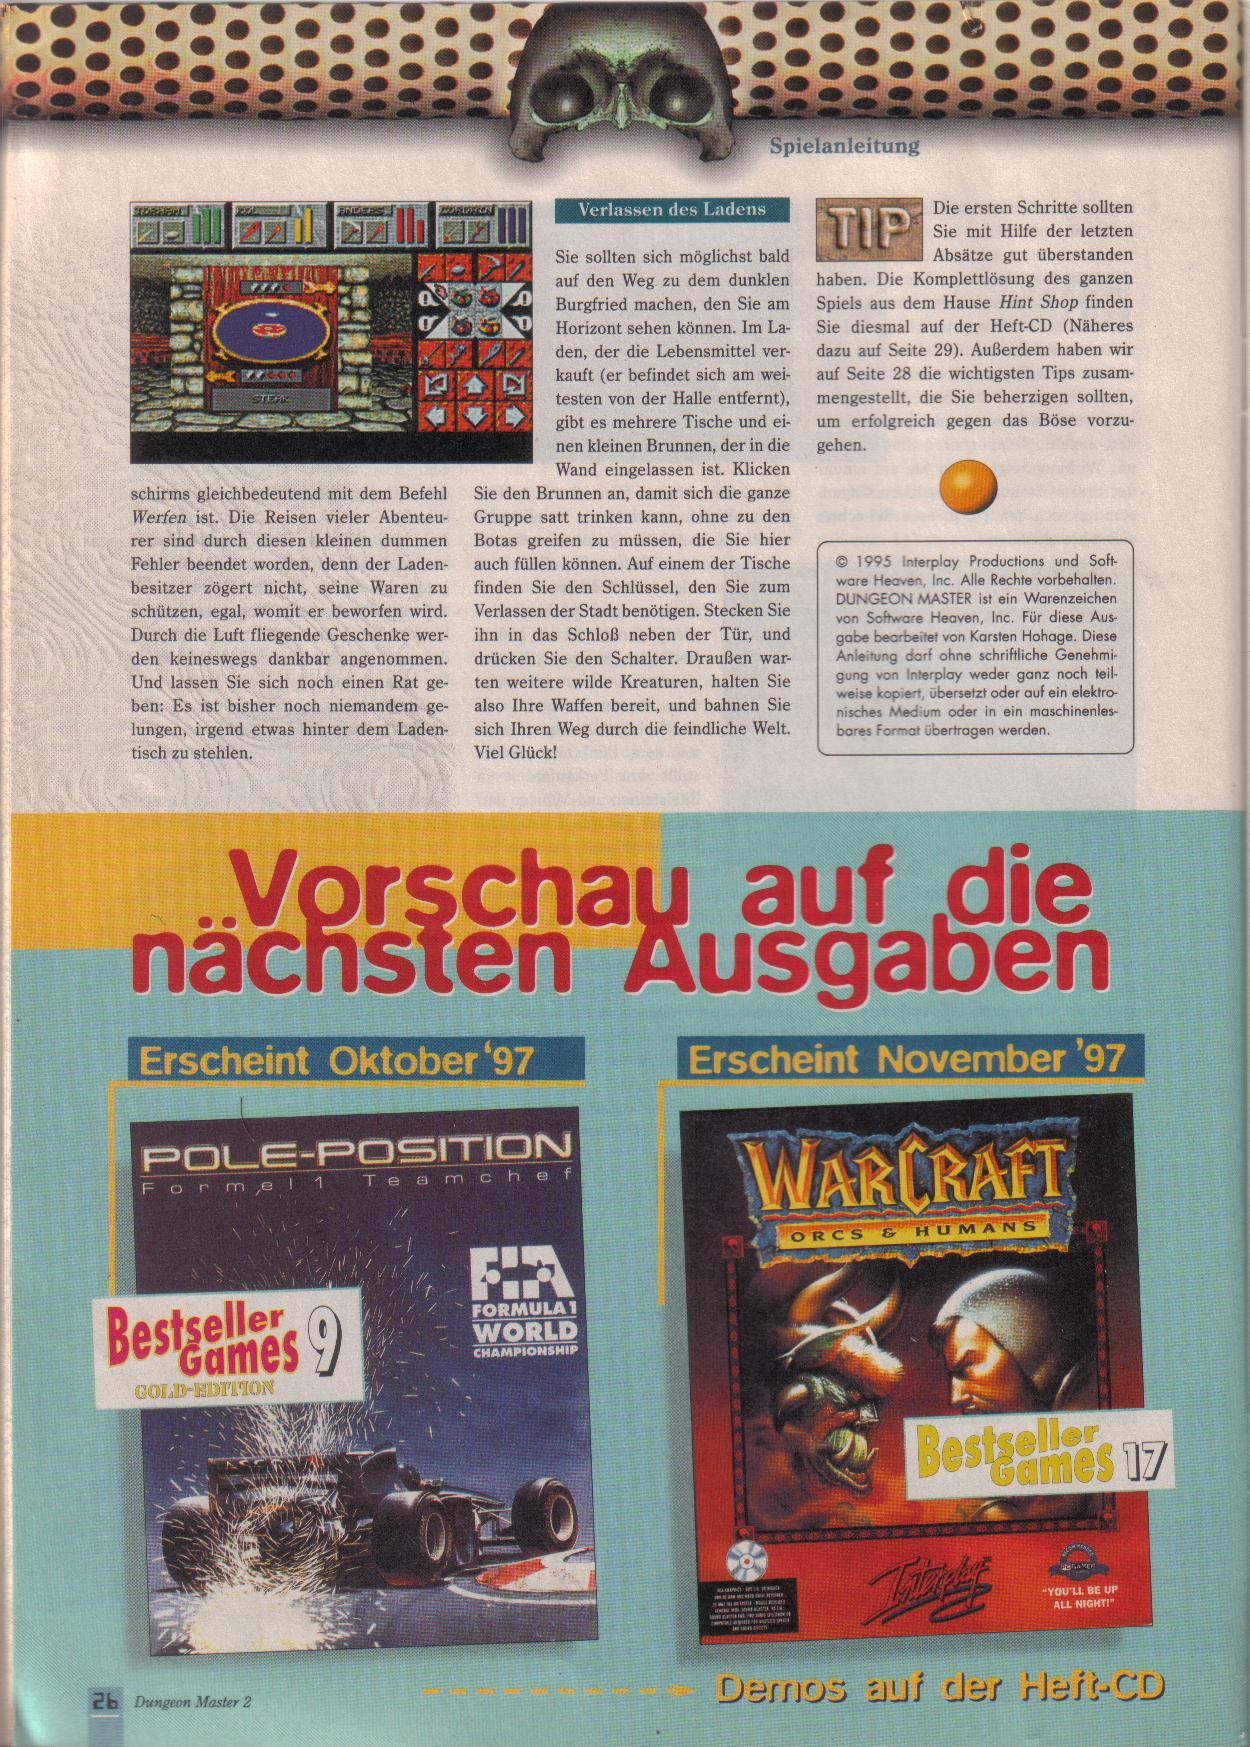 Dungeon Master II for PC (German, Best Seller Games) Page 26